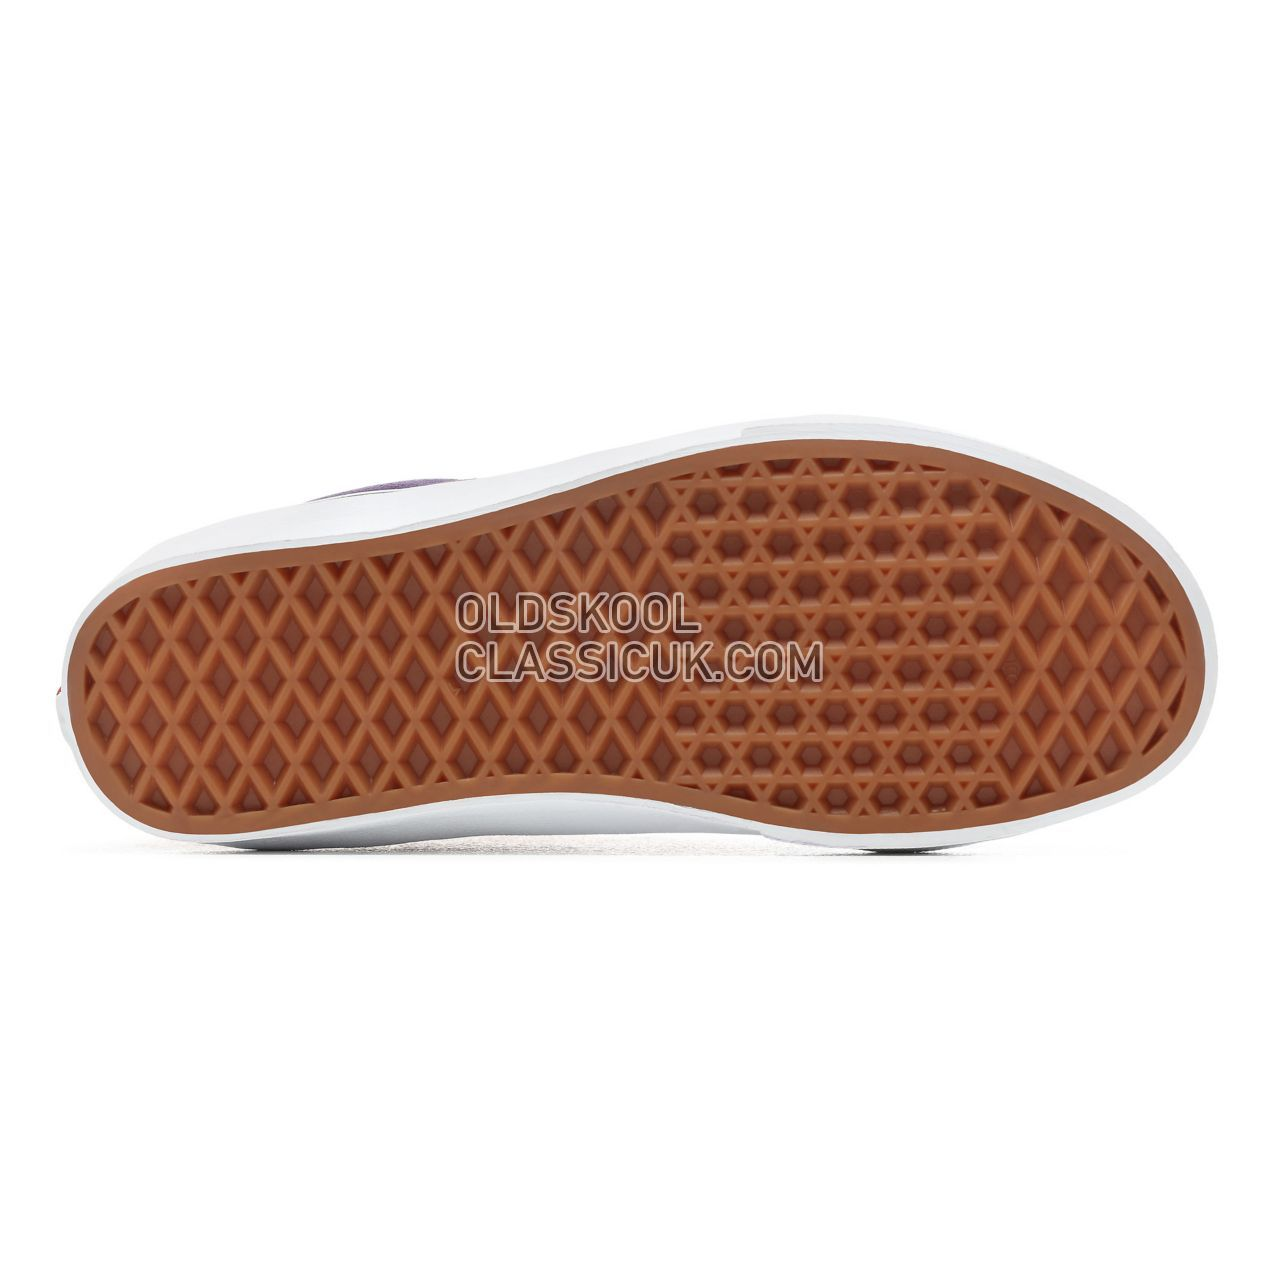 Vans California Native Style 238 Sneakers Womens (California Native) Mysterioso/True White VN0A3JFIVOM Shoes